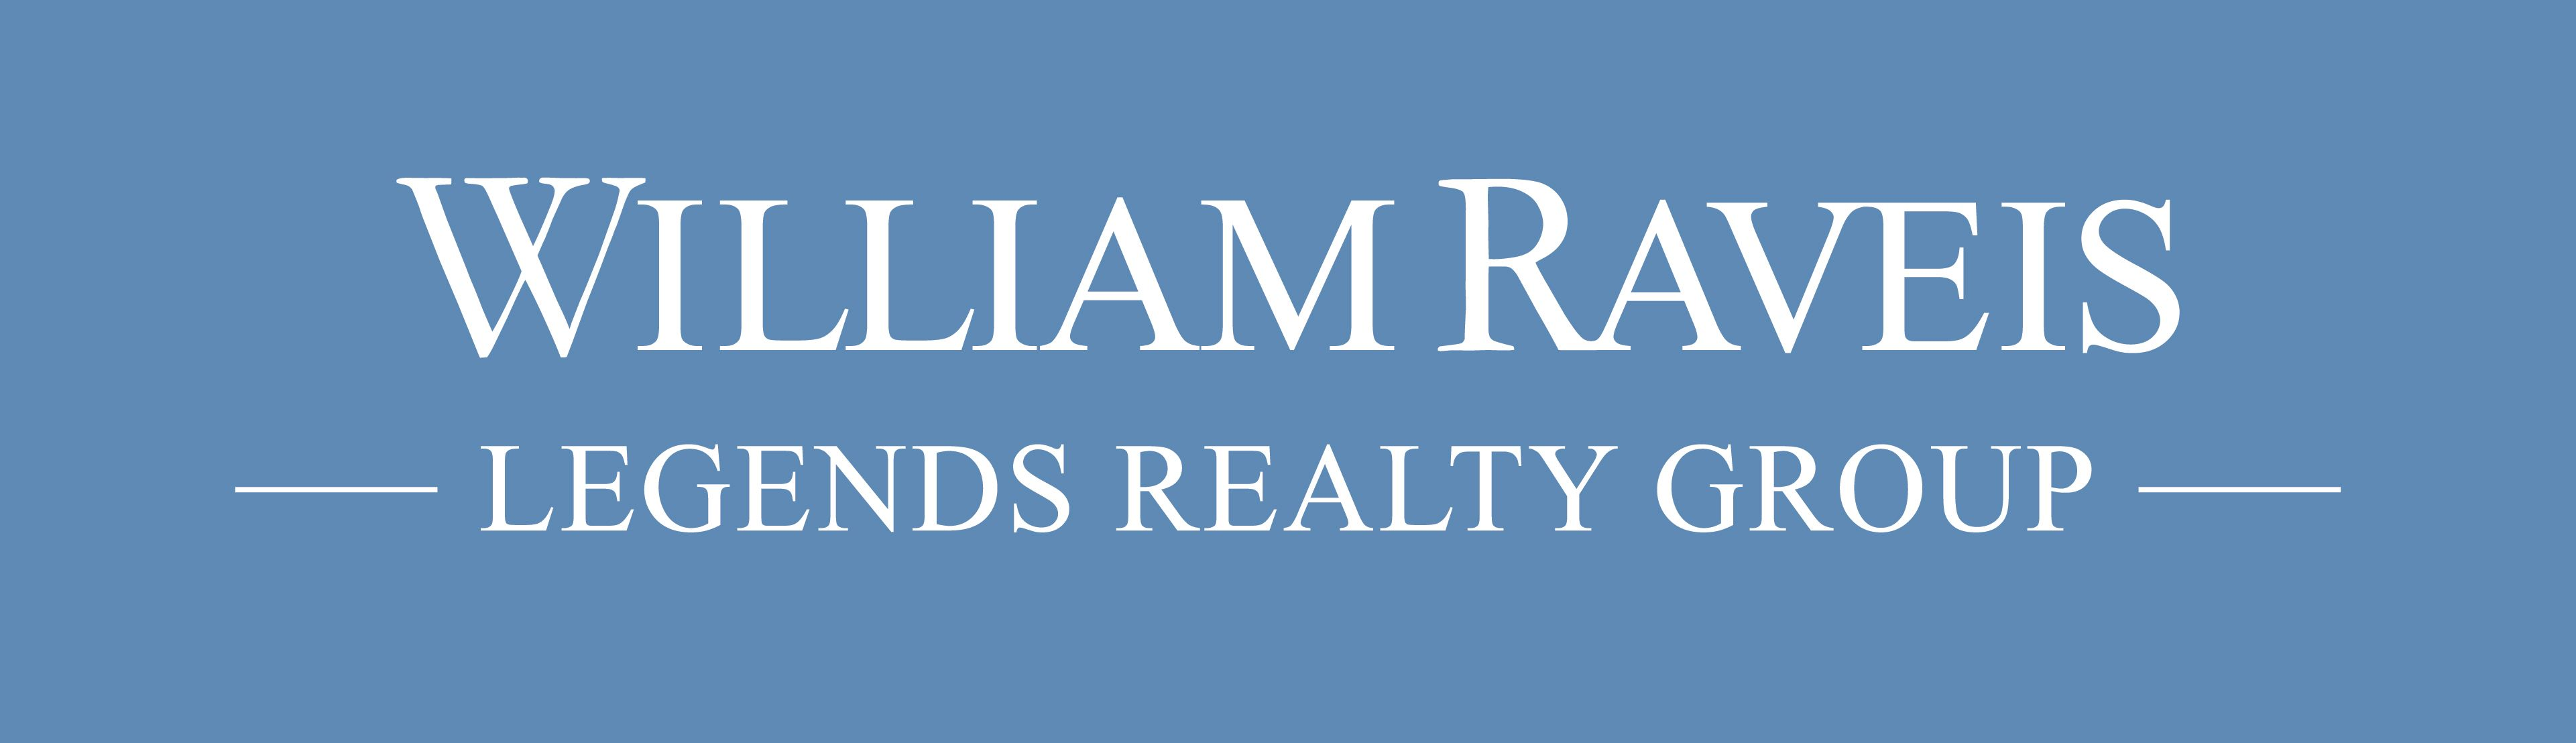 William Raveis Legends Realty Group Phyllis Lerner | Realtor